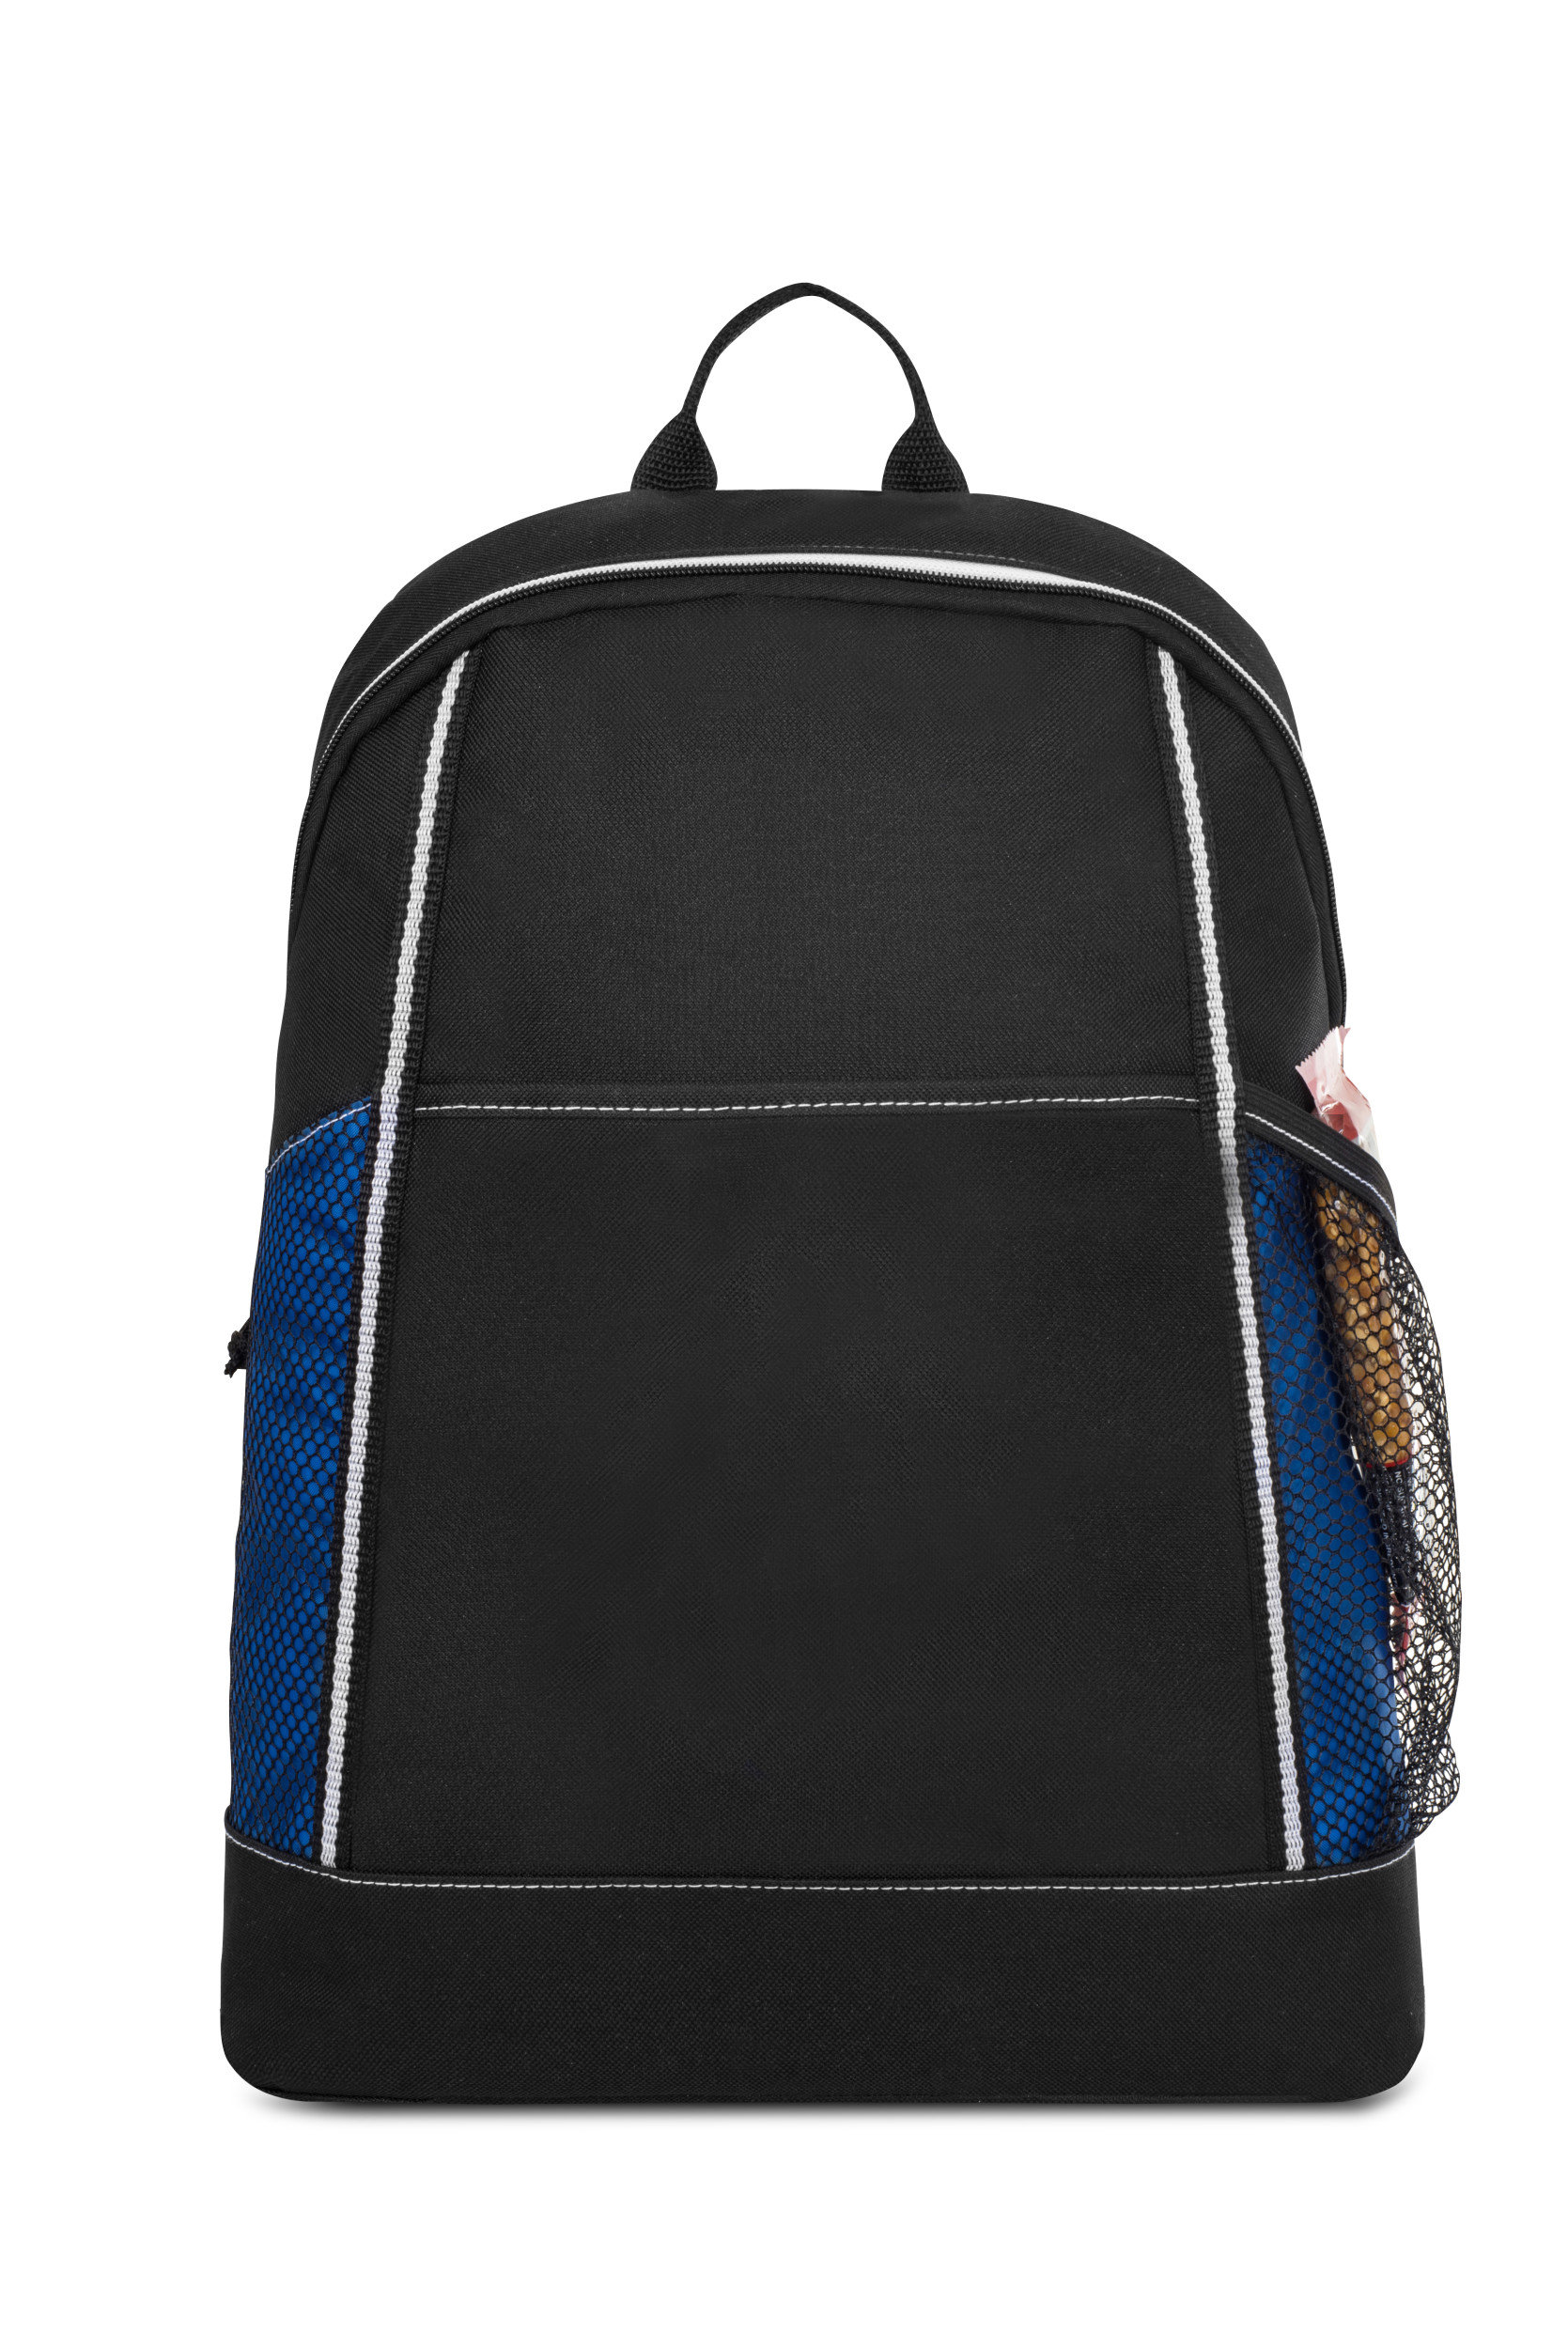 Gemline 5245 - Champion Backpack